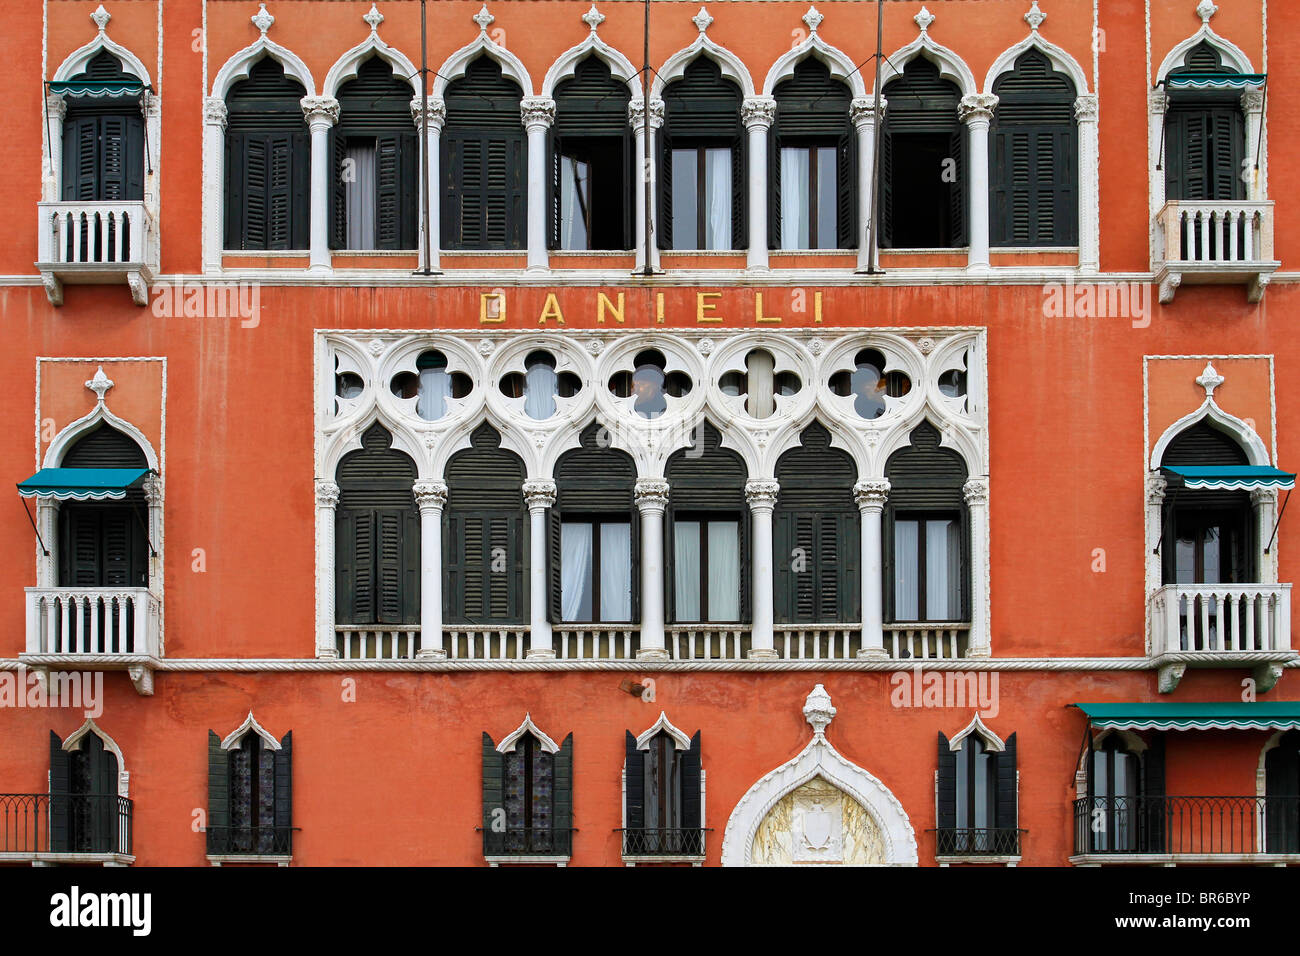 Facade Of The 5 Star Hotel Danieli In Venice Italy Stock